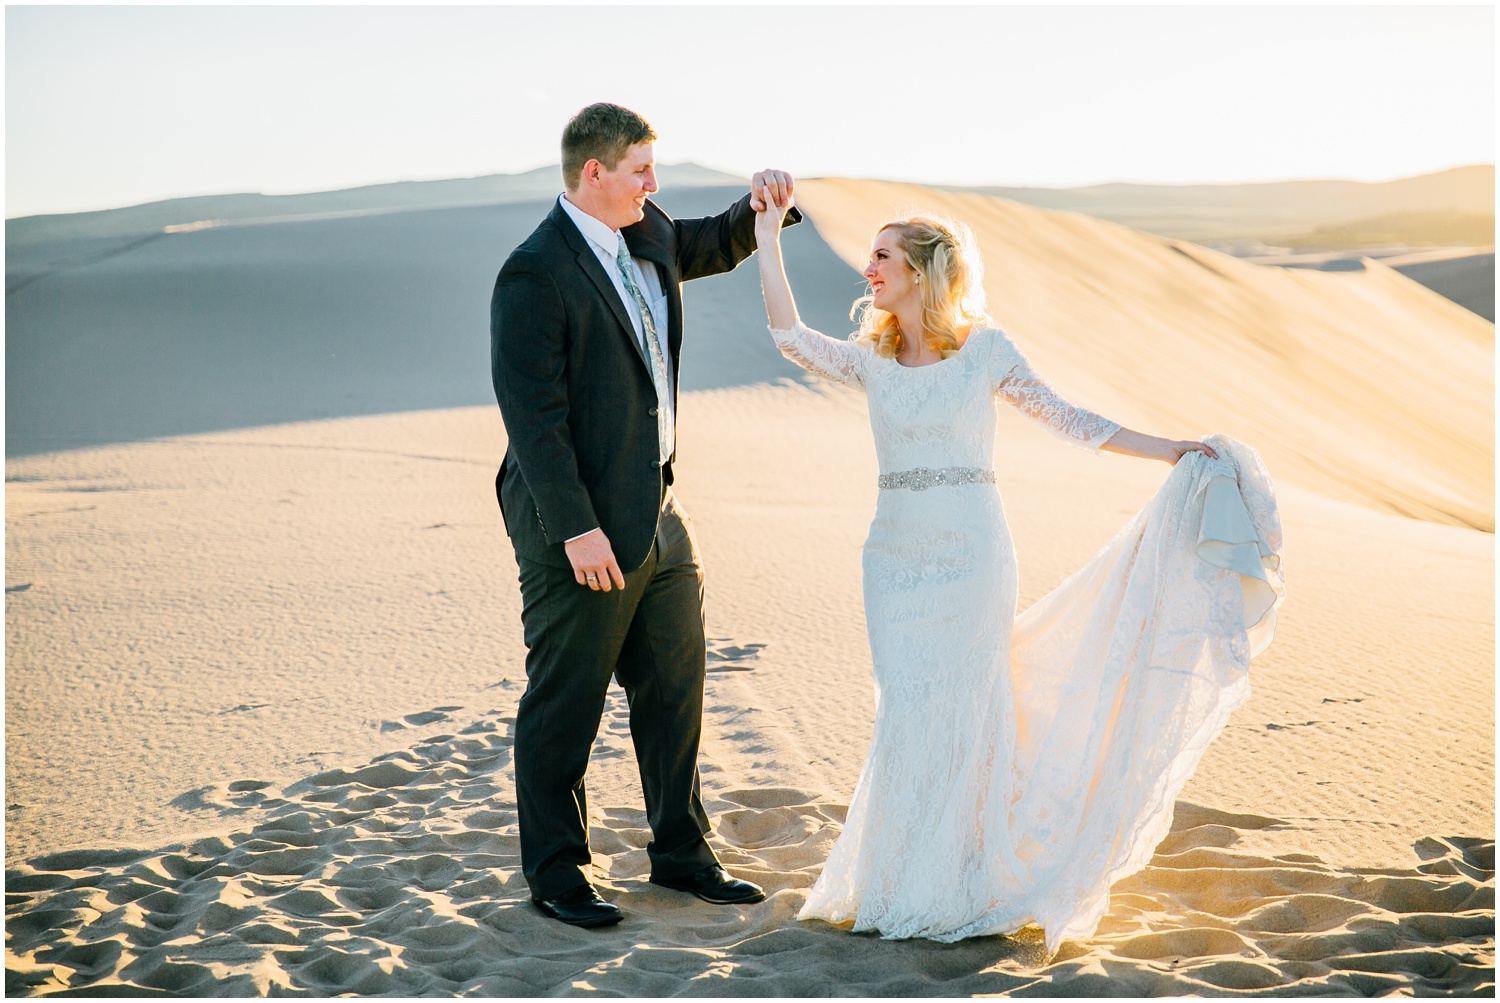 saint-anthony-sand-dunes-bridals-idaho-engagements-colorado-wyoming-wedding-photographer_0738.jpg